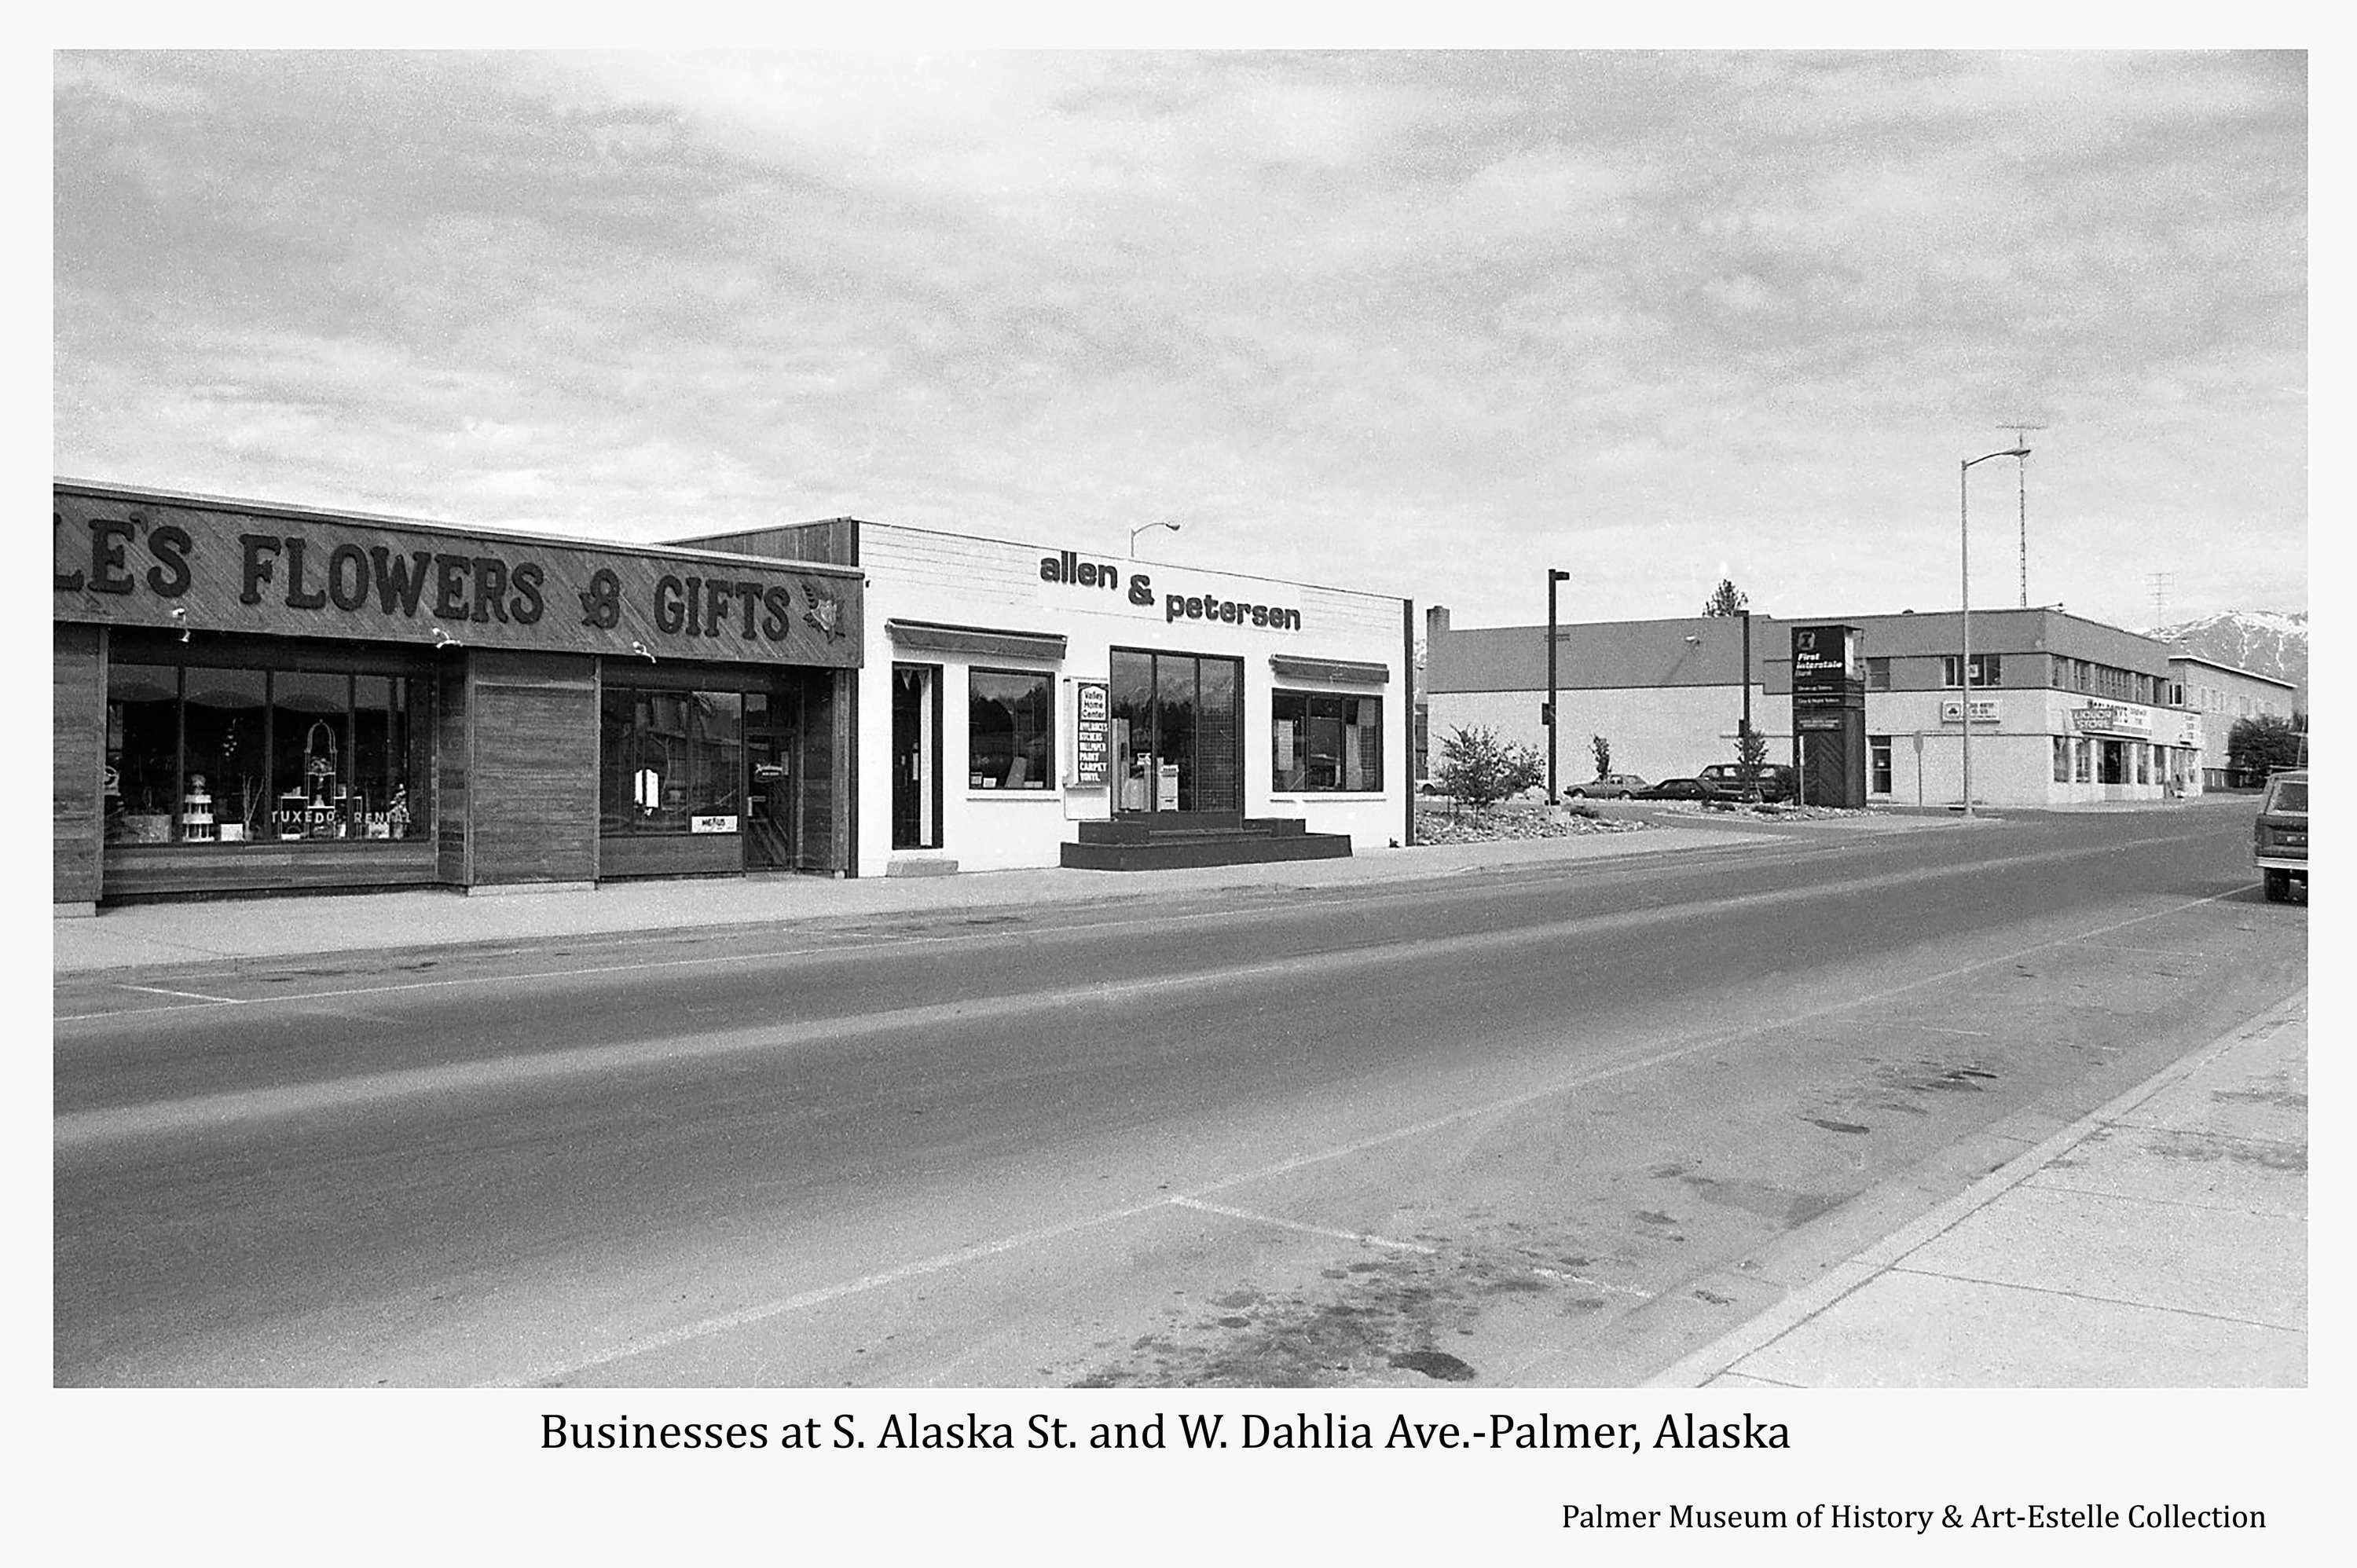 Image is a street view of businesses on the west side of South Alaska Way located between West Evergreen and West Dahlia Avenues and on the north side of West Dahlia Avenue.  Signs identify businesses as Estelle's Flowers & Gifts, Allen & Peterson, First Interstate Bank, and Koslosky's Department Store containing an Insurance office and a Liquor Store.  A portion of the Valley Hotel is also visible.